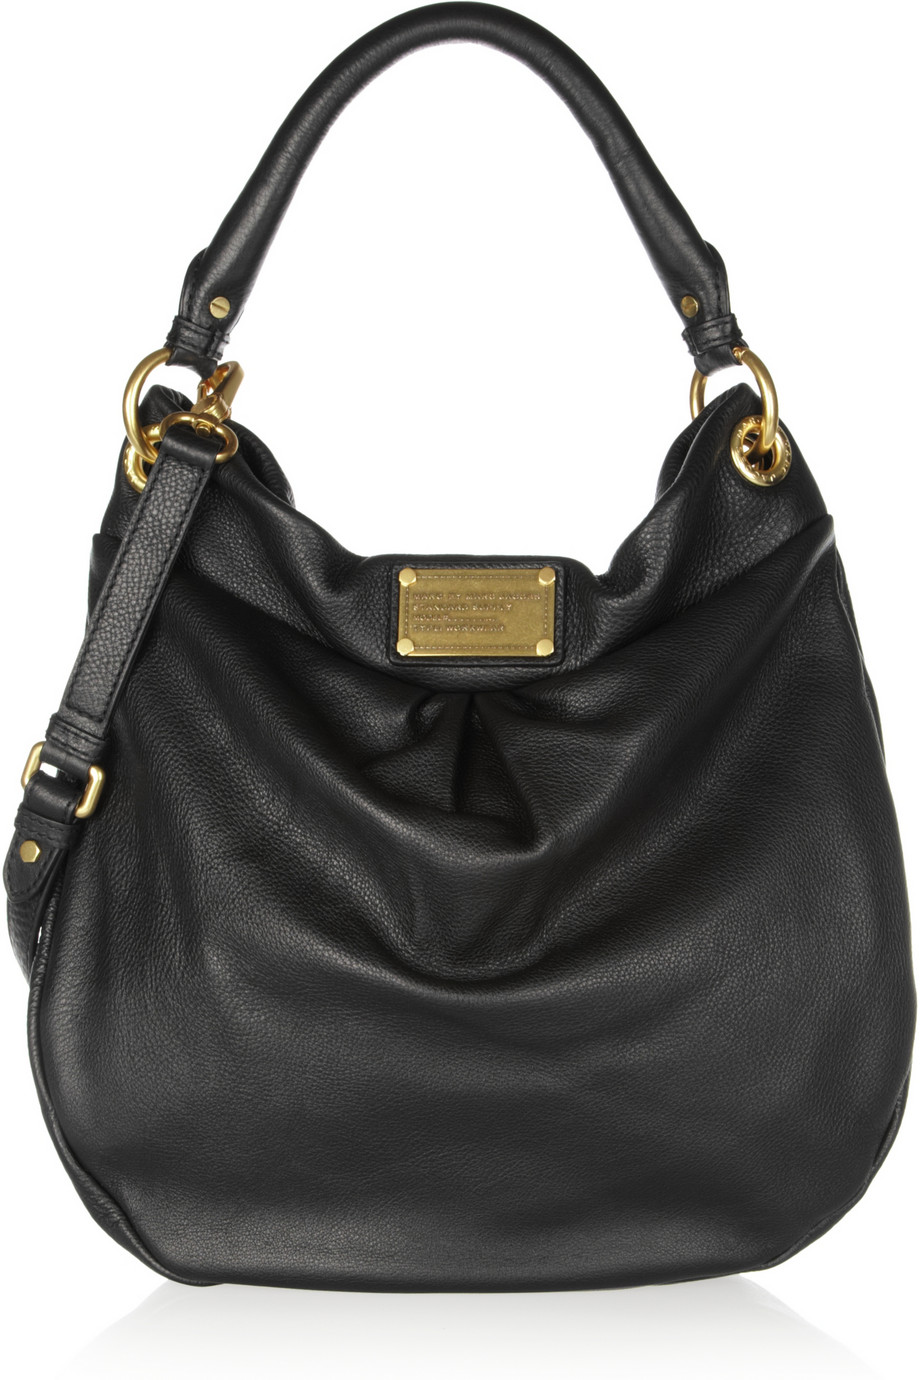 09 Oct Marc By Jacobs Classic Black Hobo